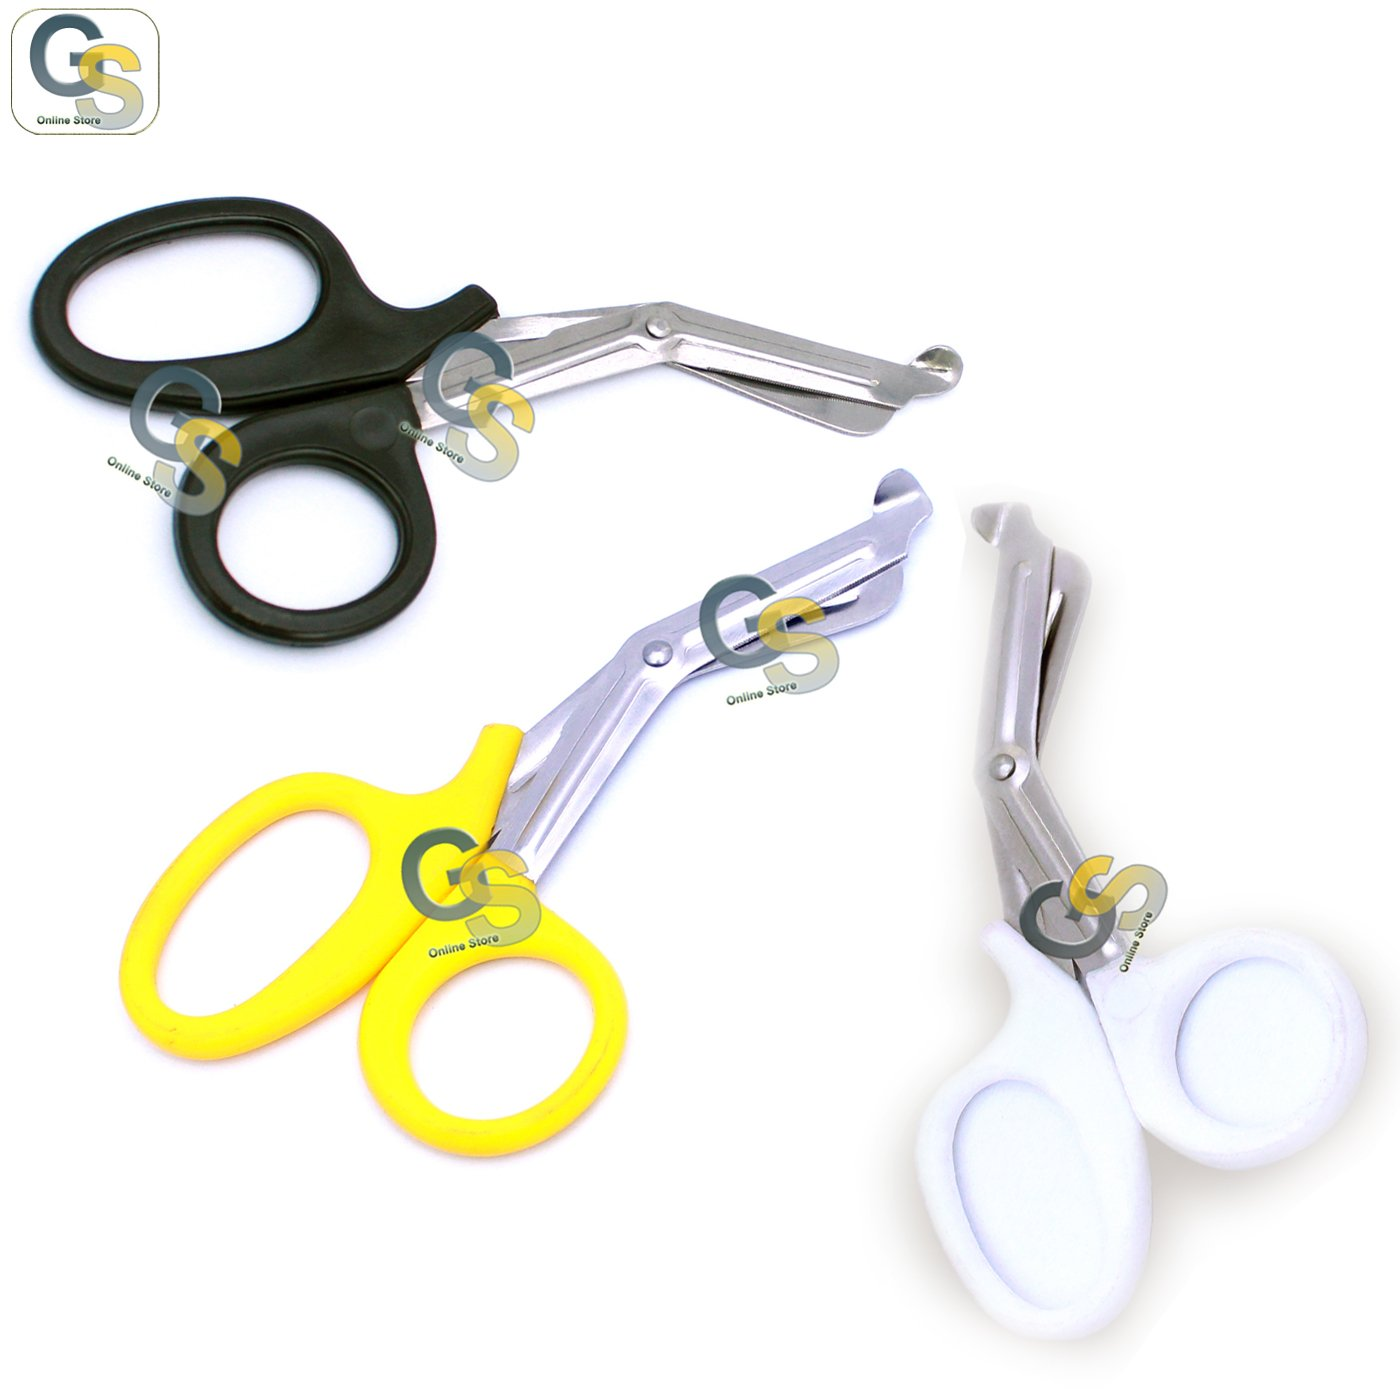 G.S 3 PCS (BLACK & YELLOW & WHITE) PARAMEDIC UTILITY BANDAGE TRAUMA EMT EMS SHEARS SCISSORS 7.25 INCH STAINLESS STEEL